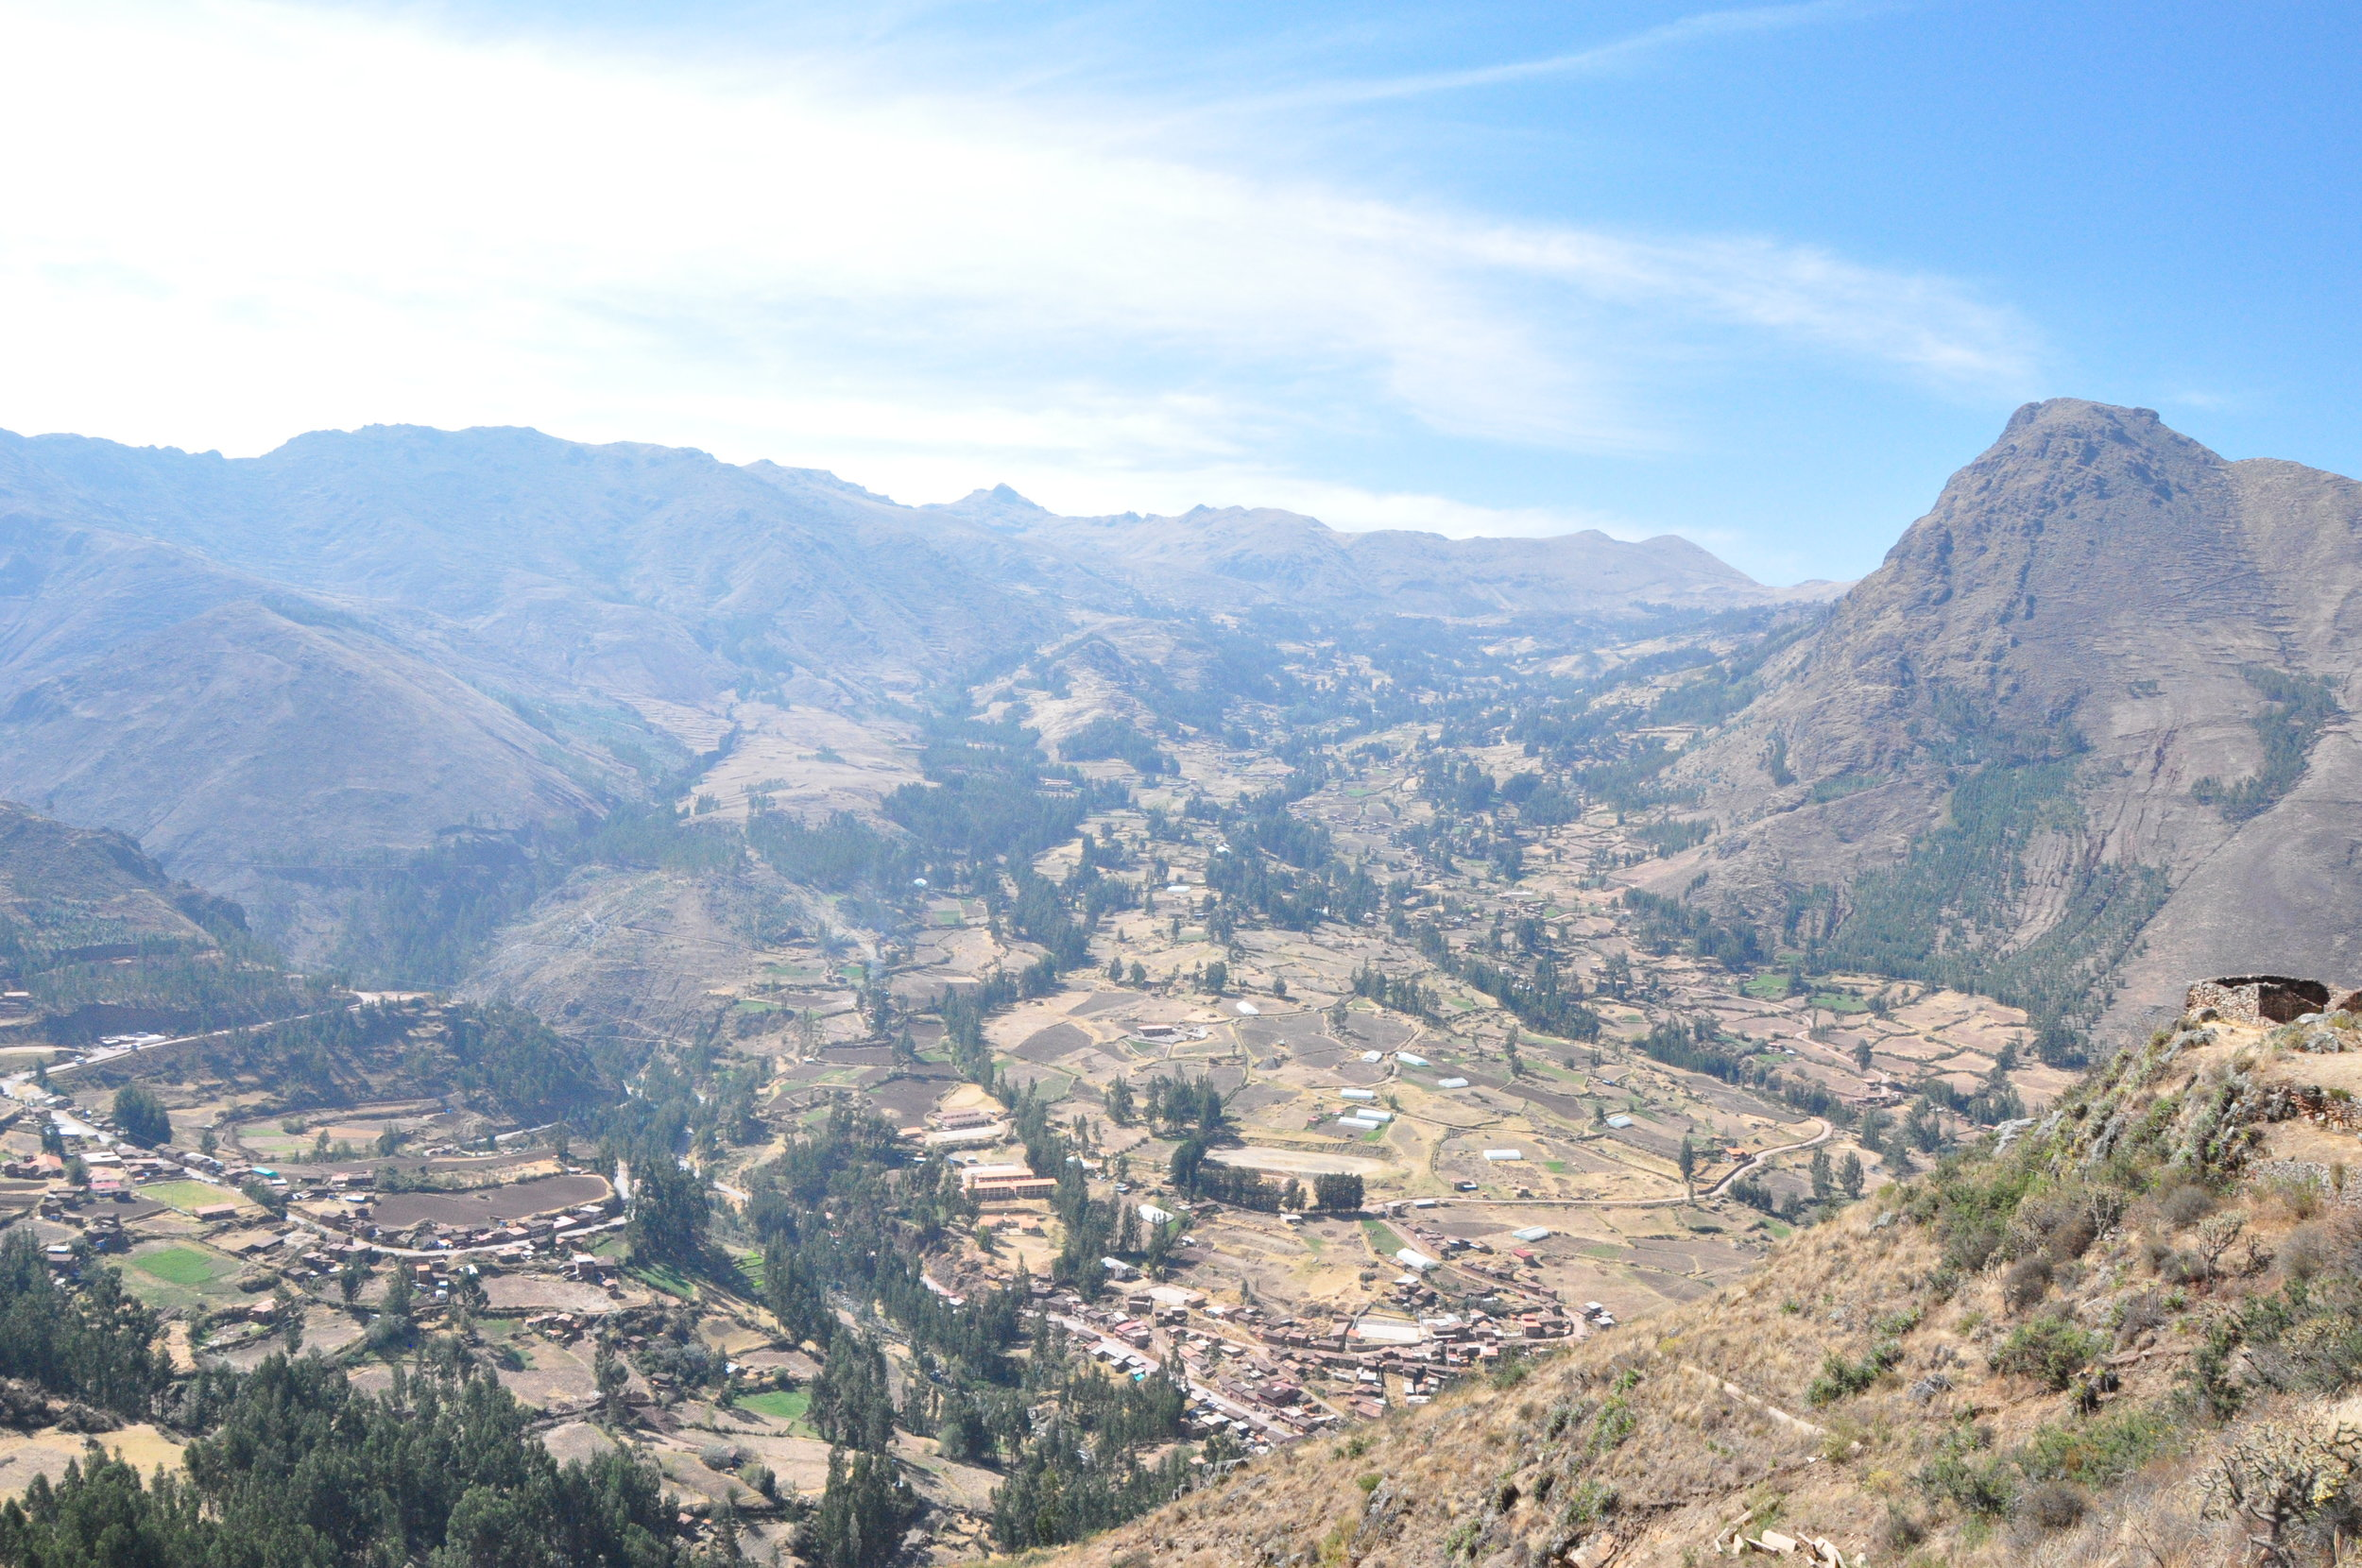 The start of a 5-mile hike overlooking the Sacred Valley of the Incas